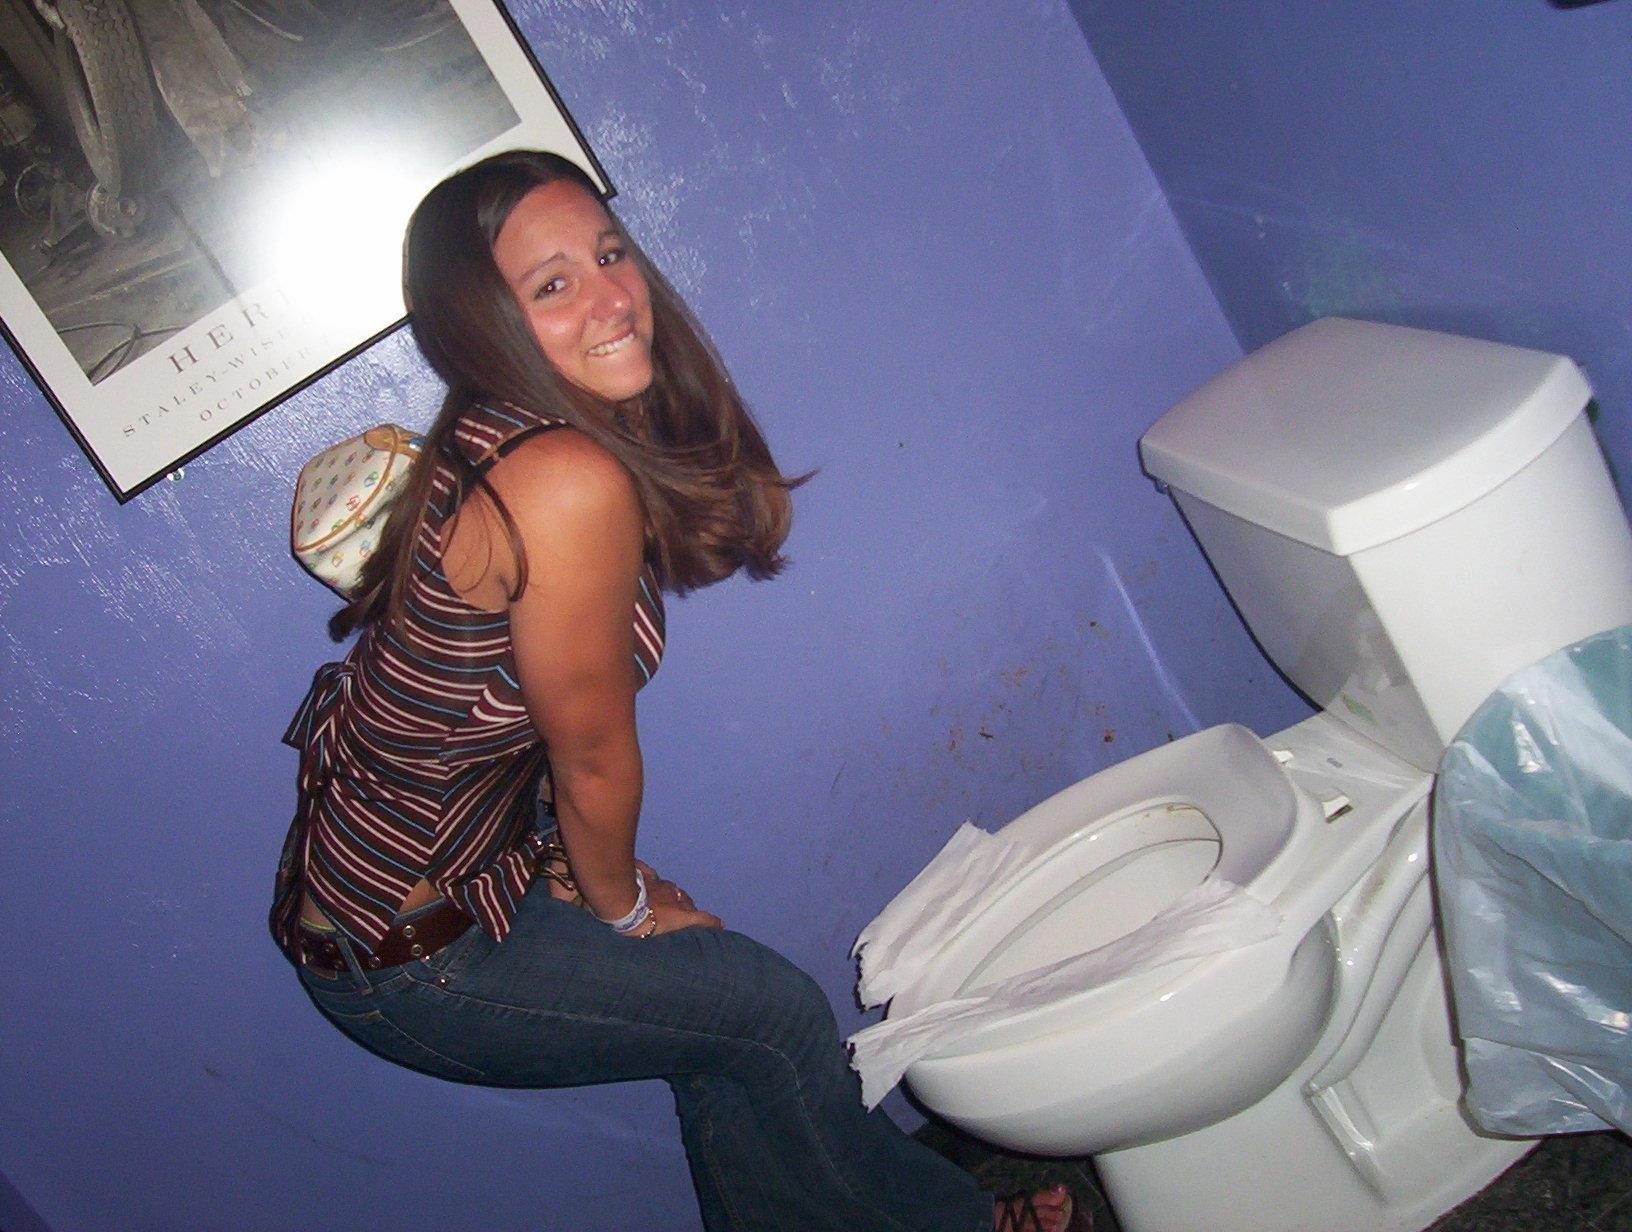 Toilet desperation peeing her pants